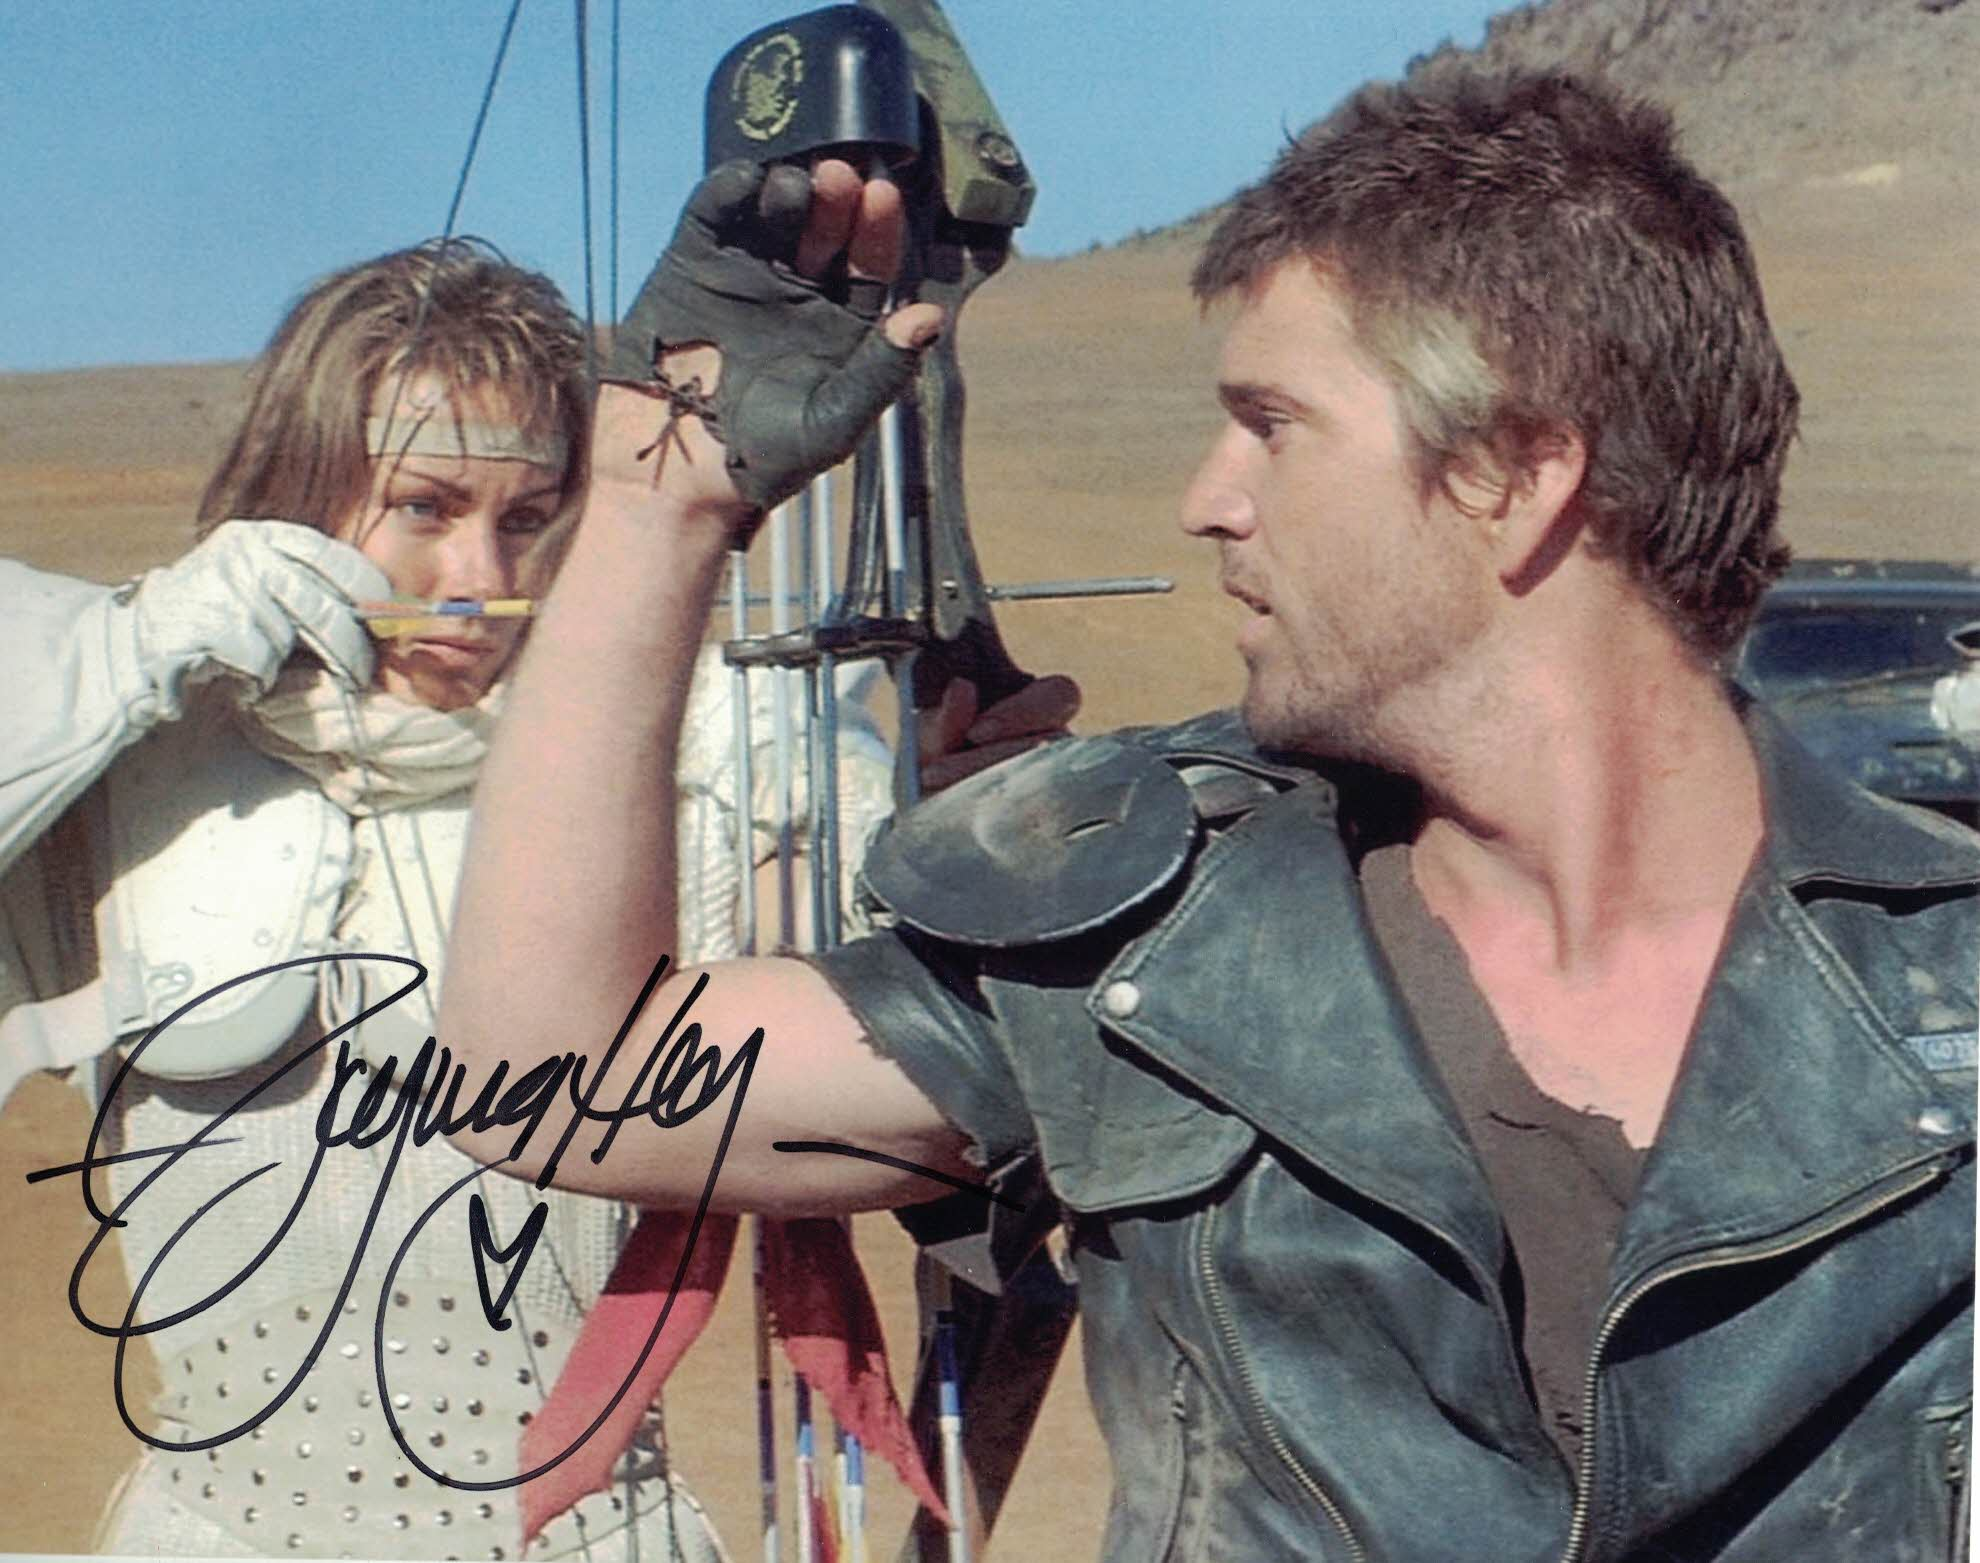 VIRGINIA HEY - Warrior Woman in Mad Max hand signed 10 x 8 photo